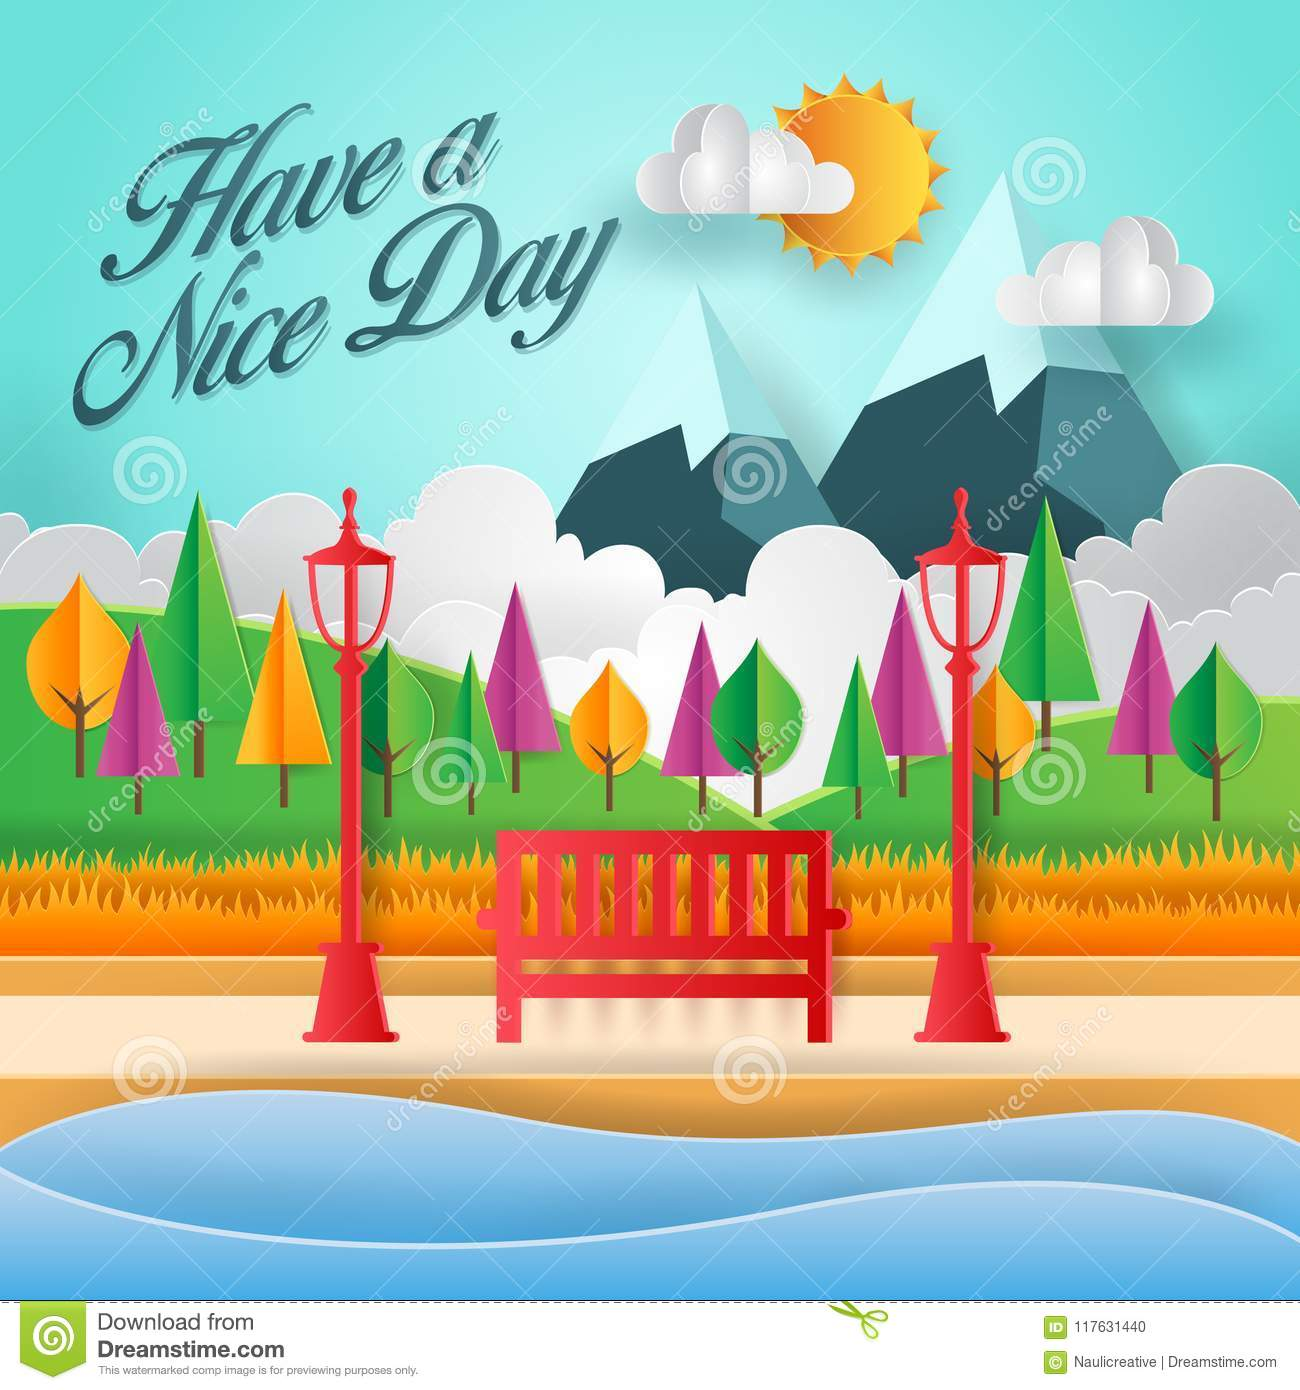 Modern summer have a nice day paper art card illustration stock modern summer have a nice day paper art card illustration m4hsunfo